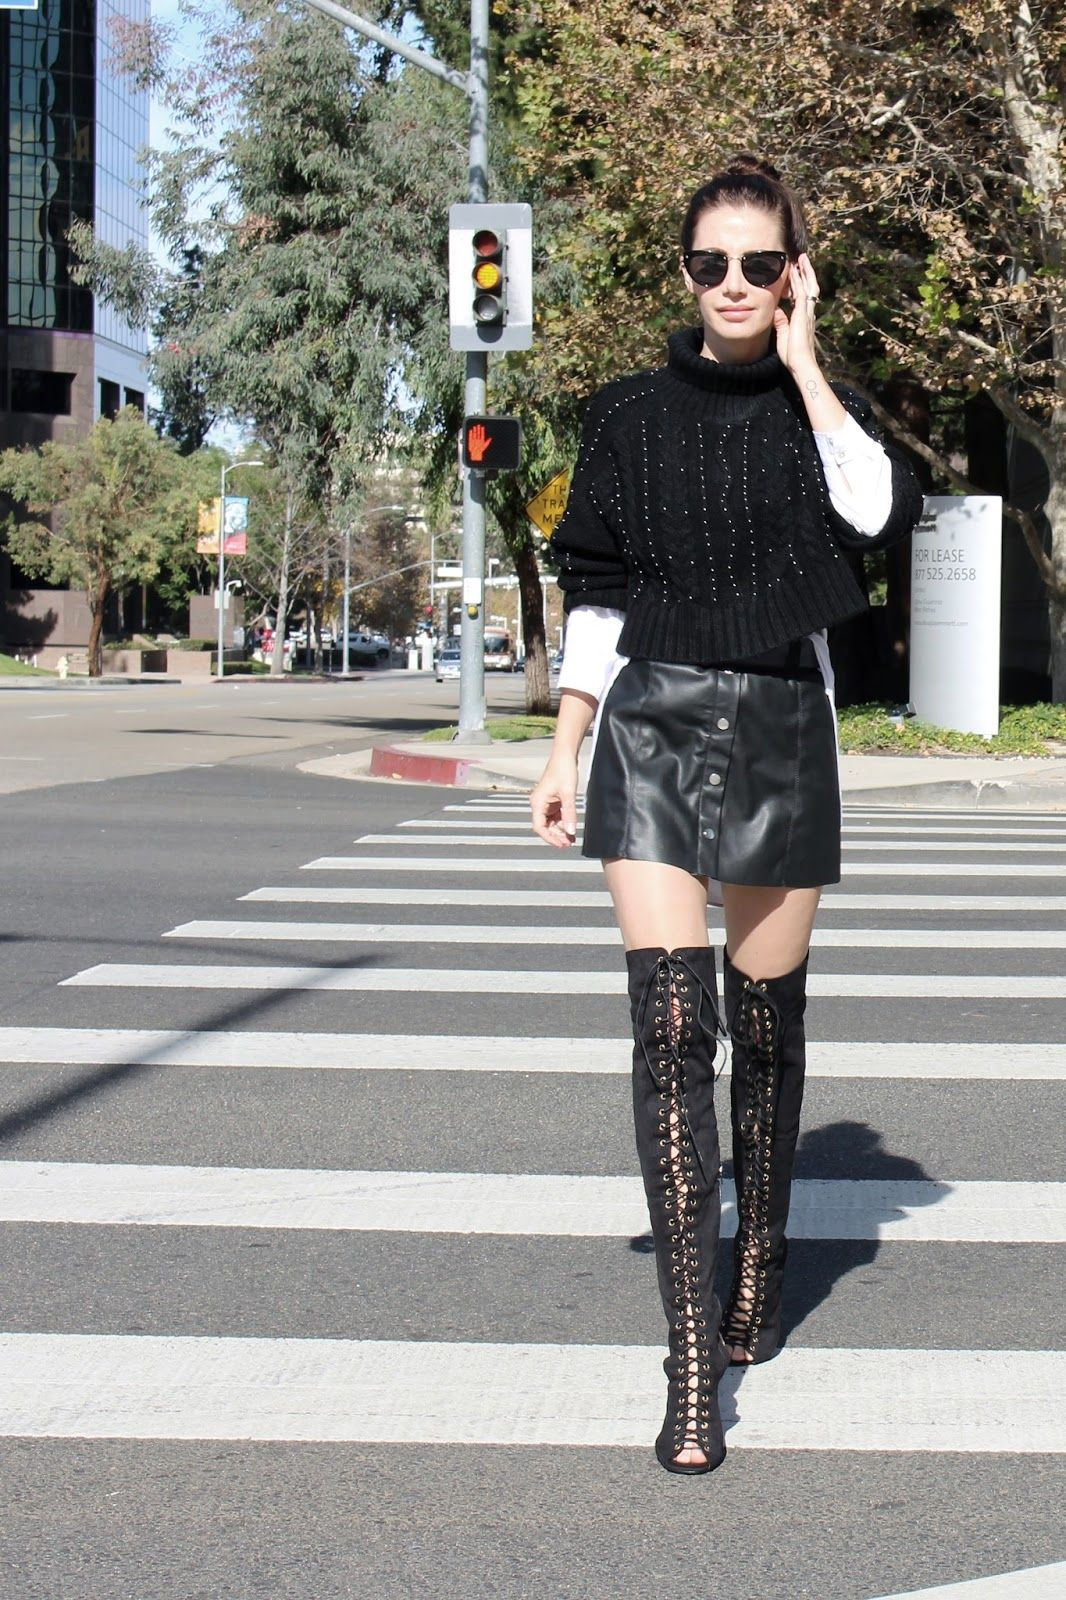 6d8dadbfc19 Button up skirt. Over knee boots. Lace up boots. Turtleneck sweater. All  black. Layering outfit. Shirt dress